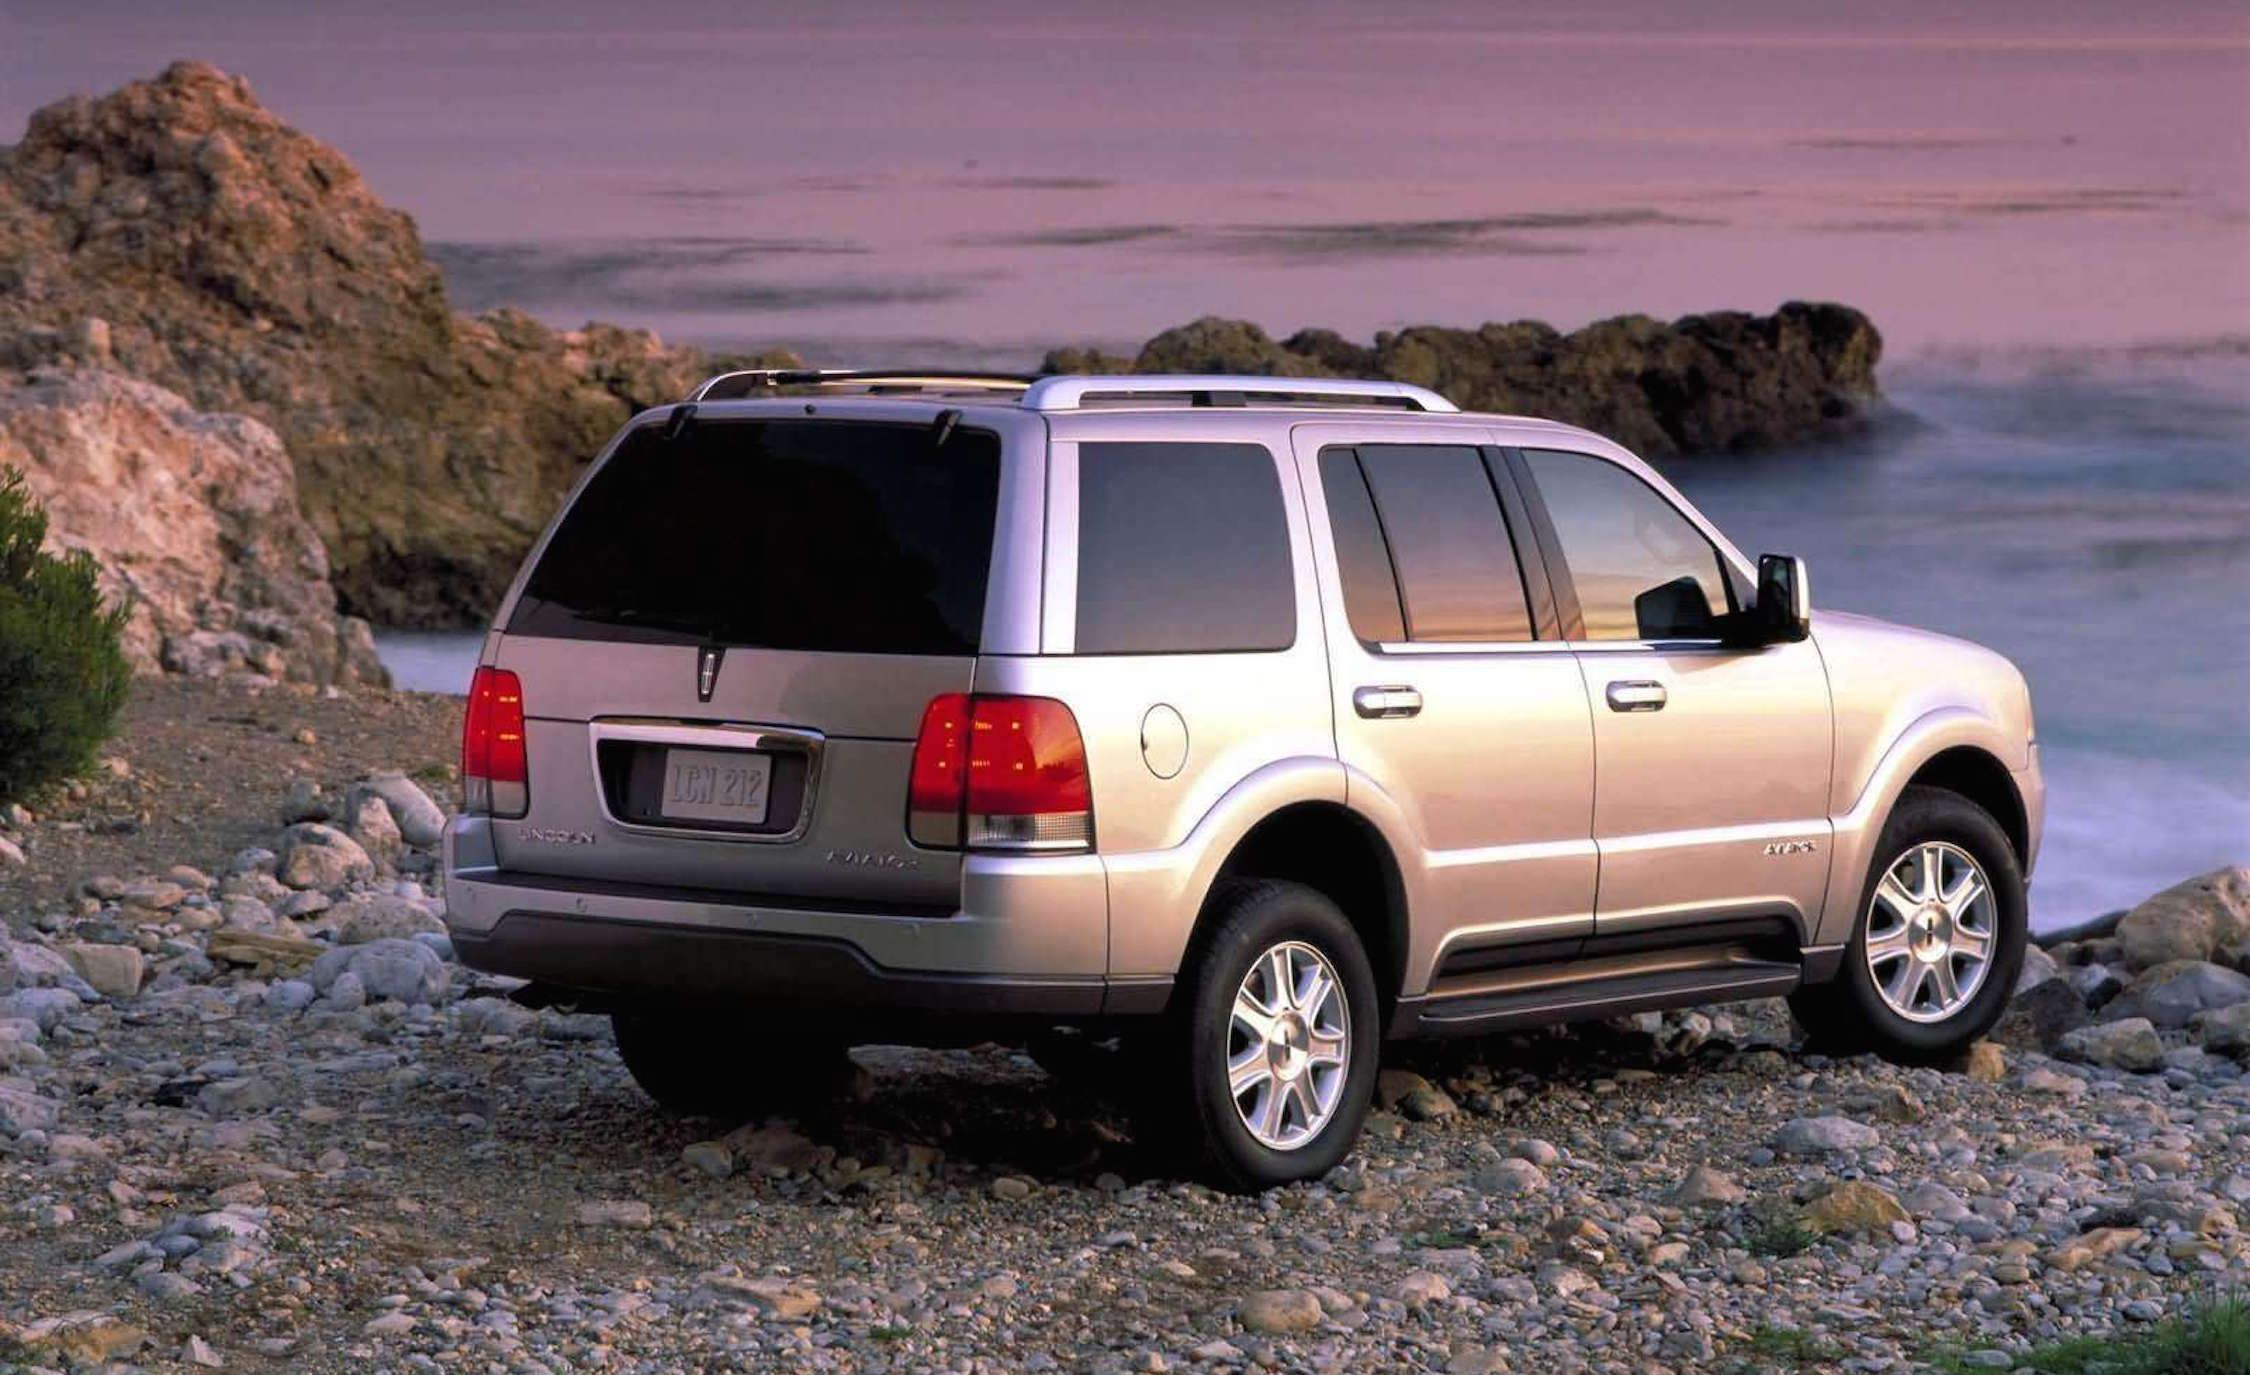 Gone Without A Trace These Are The Forgotten Suvs 1992 Isuzu Rodeo Problems